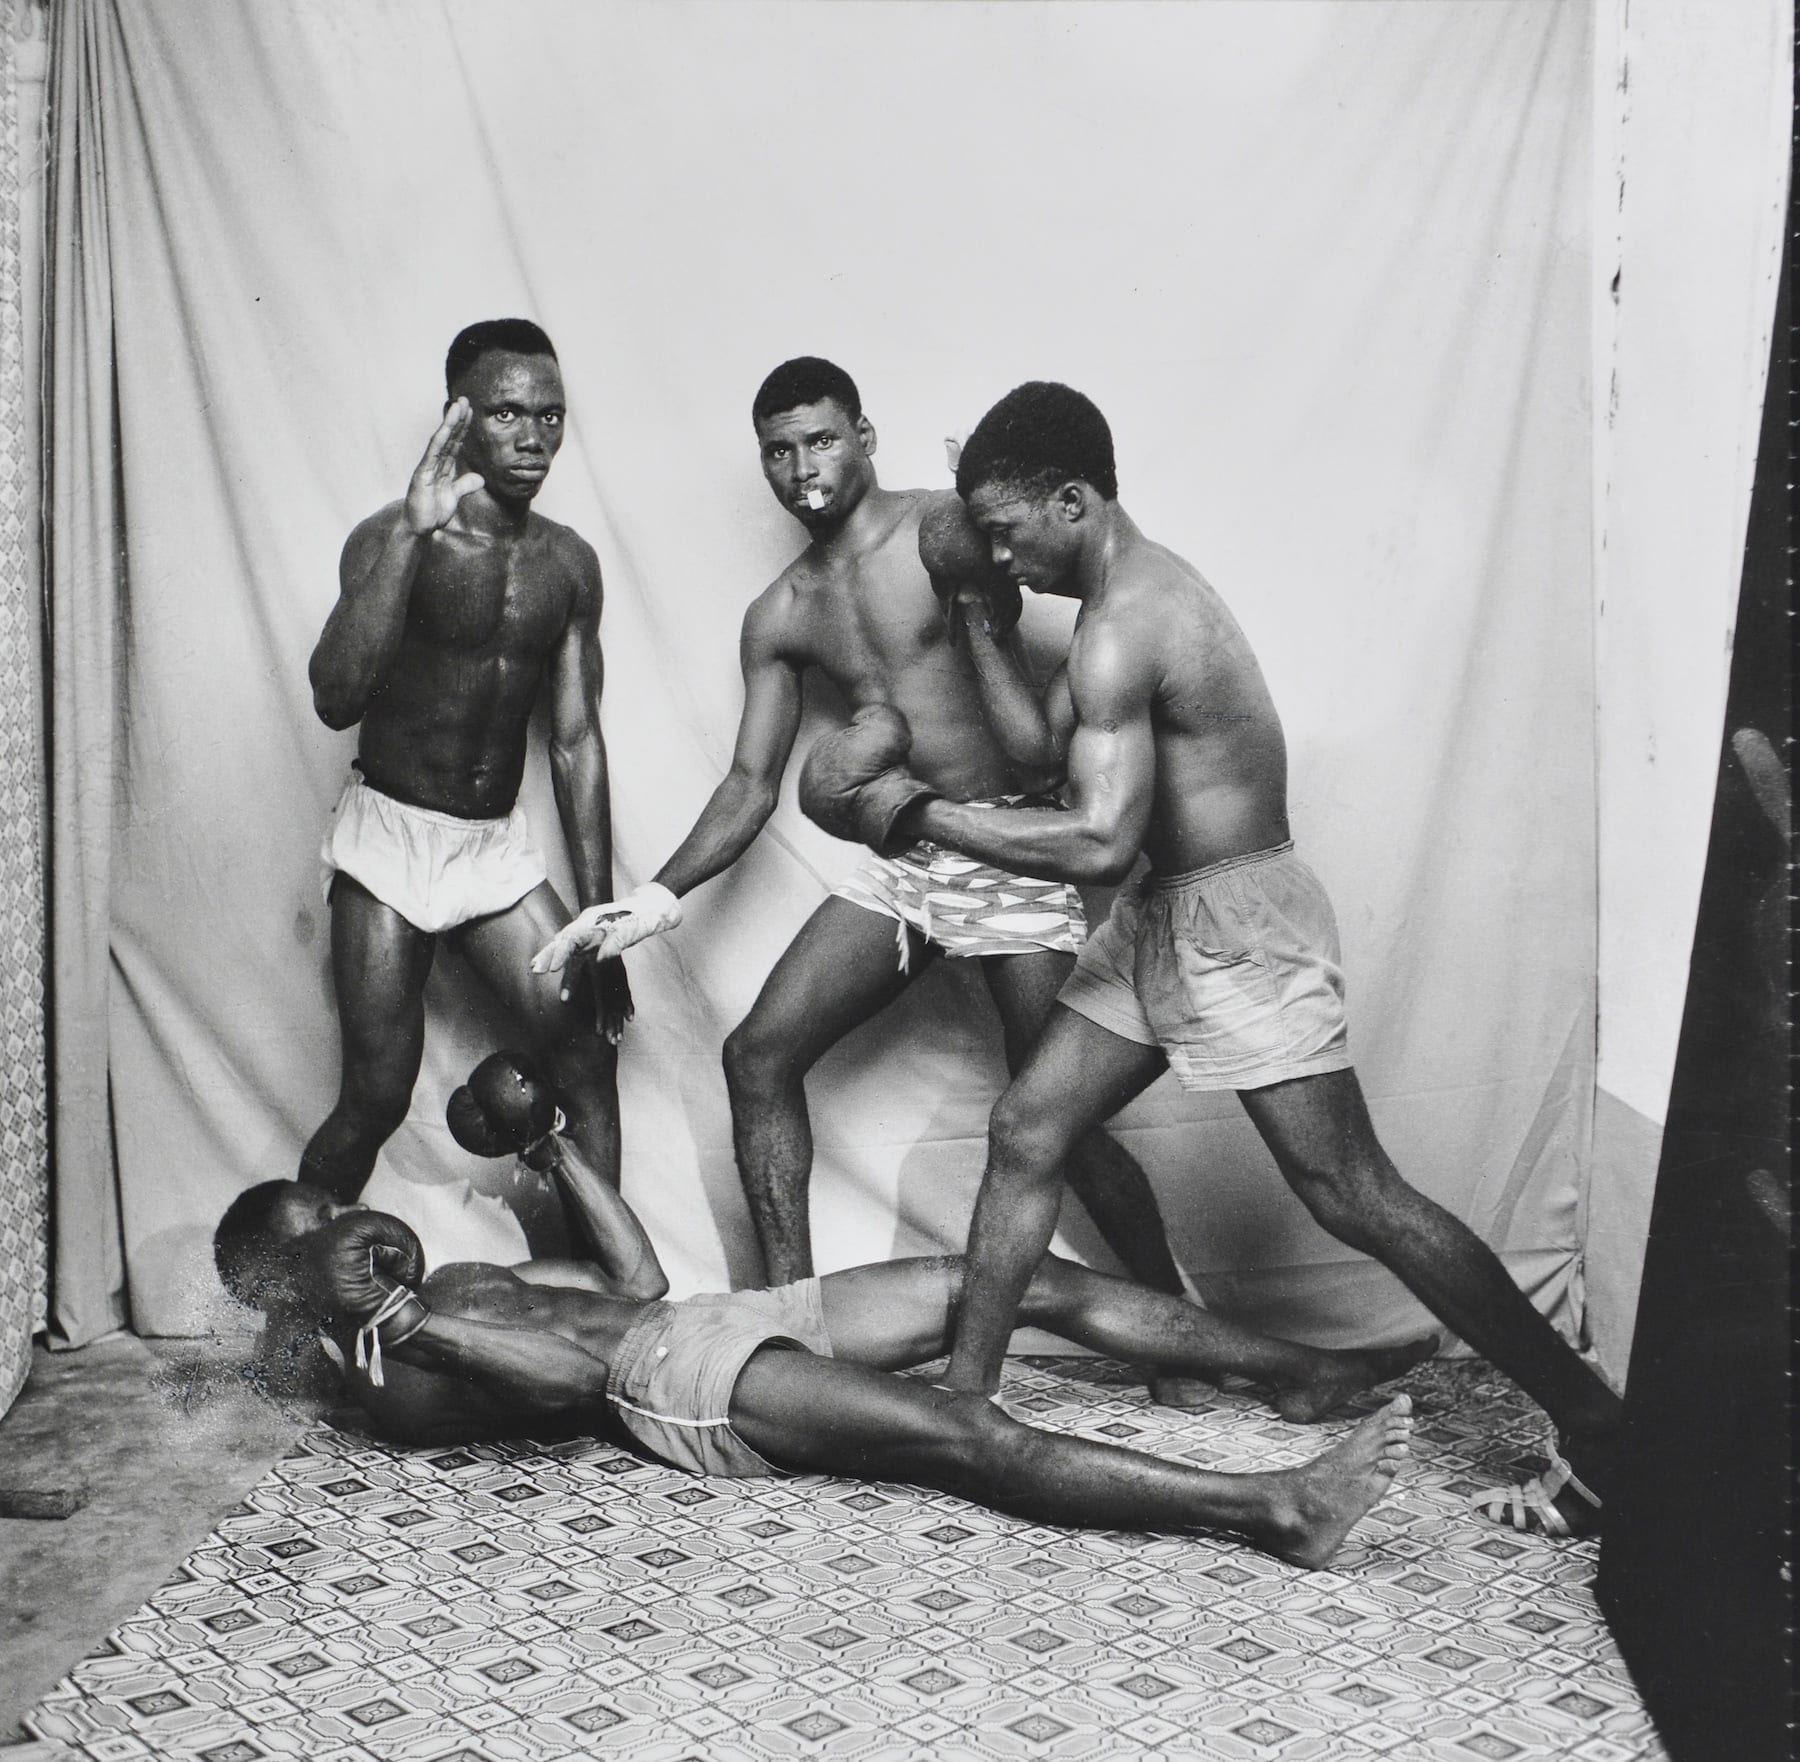 Malick Sidibe-Boxers Posing-HackelBury Fine Art-black and white photograph of four boxers posing in a photography studio